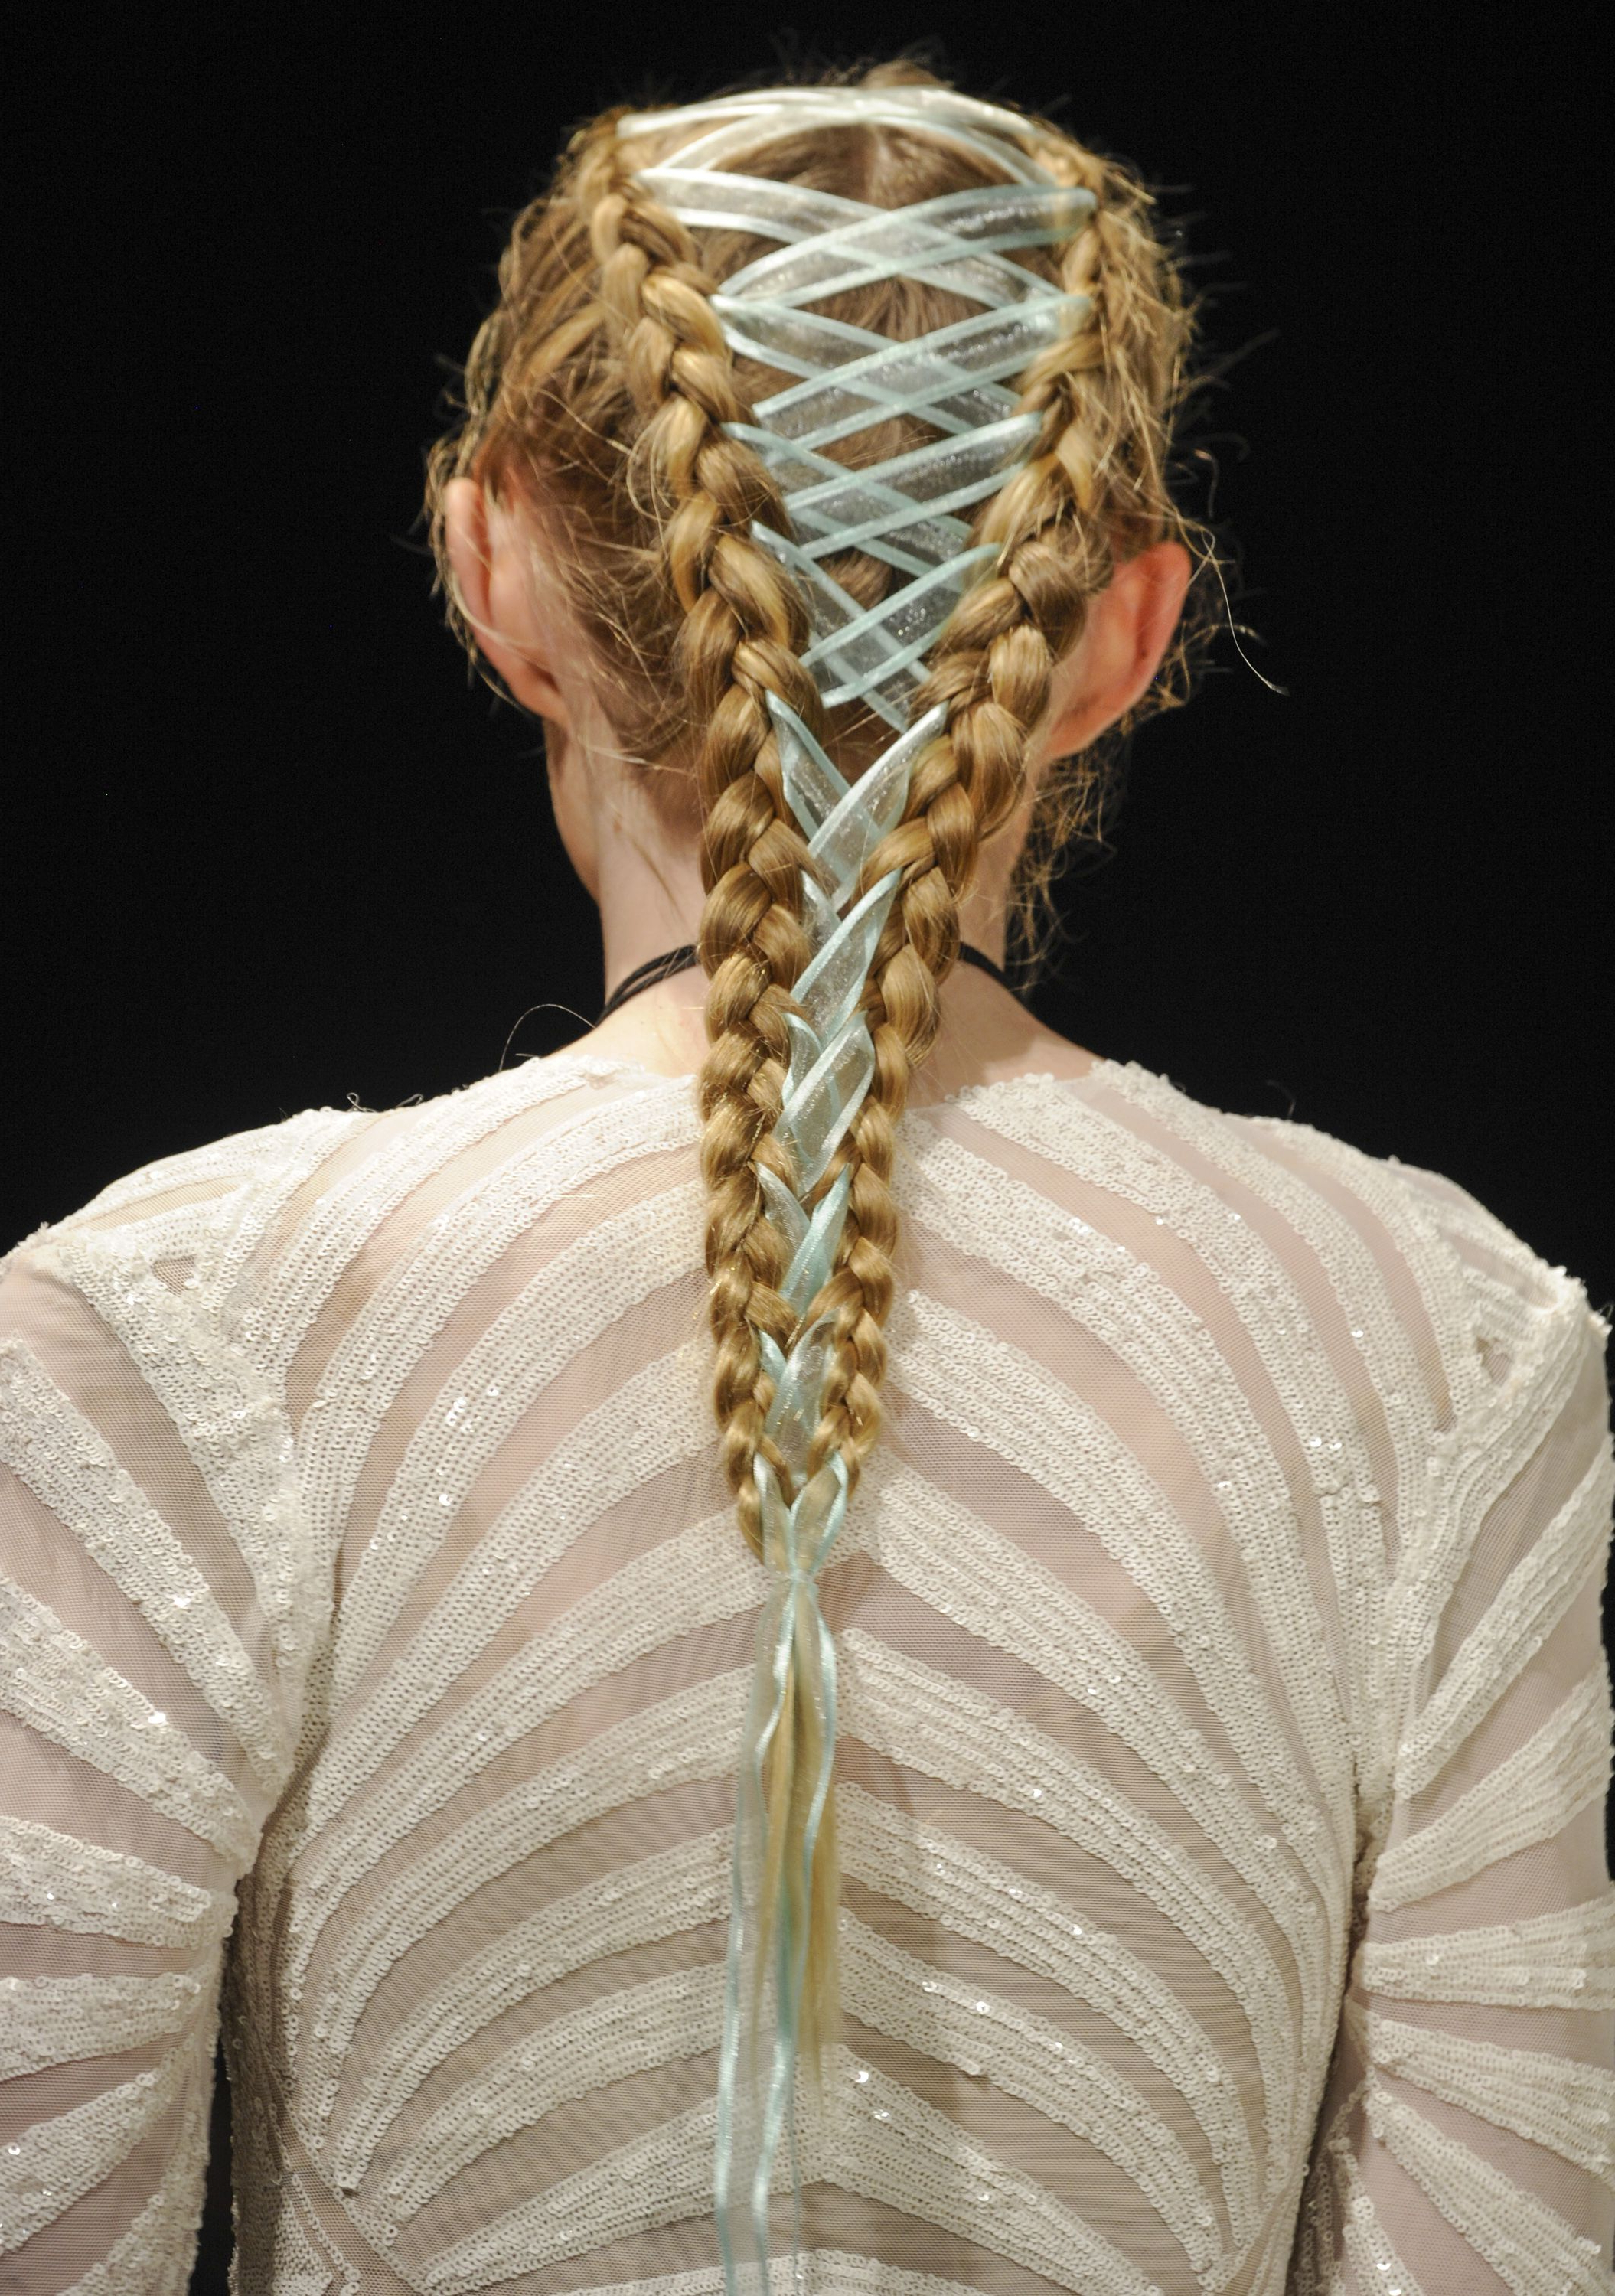 60 Easy Braided Hairstyles – Cool Braid How To's & Ideas Regarding 2020 Halo Braided Hairstyles With Long Tendrils (View 14 of 20)